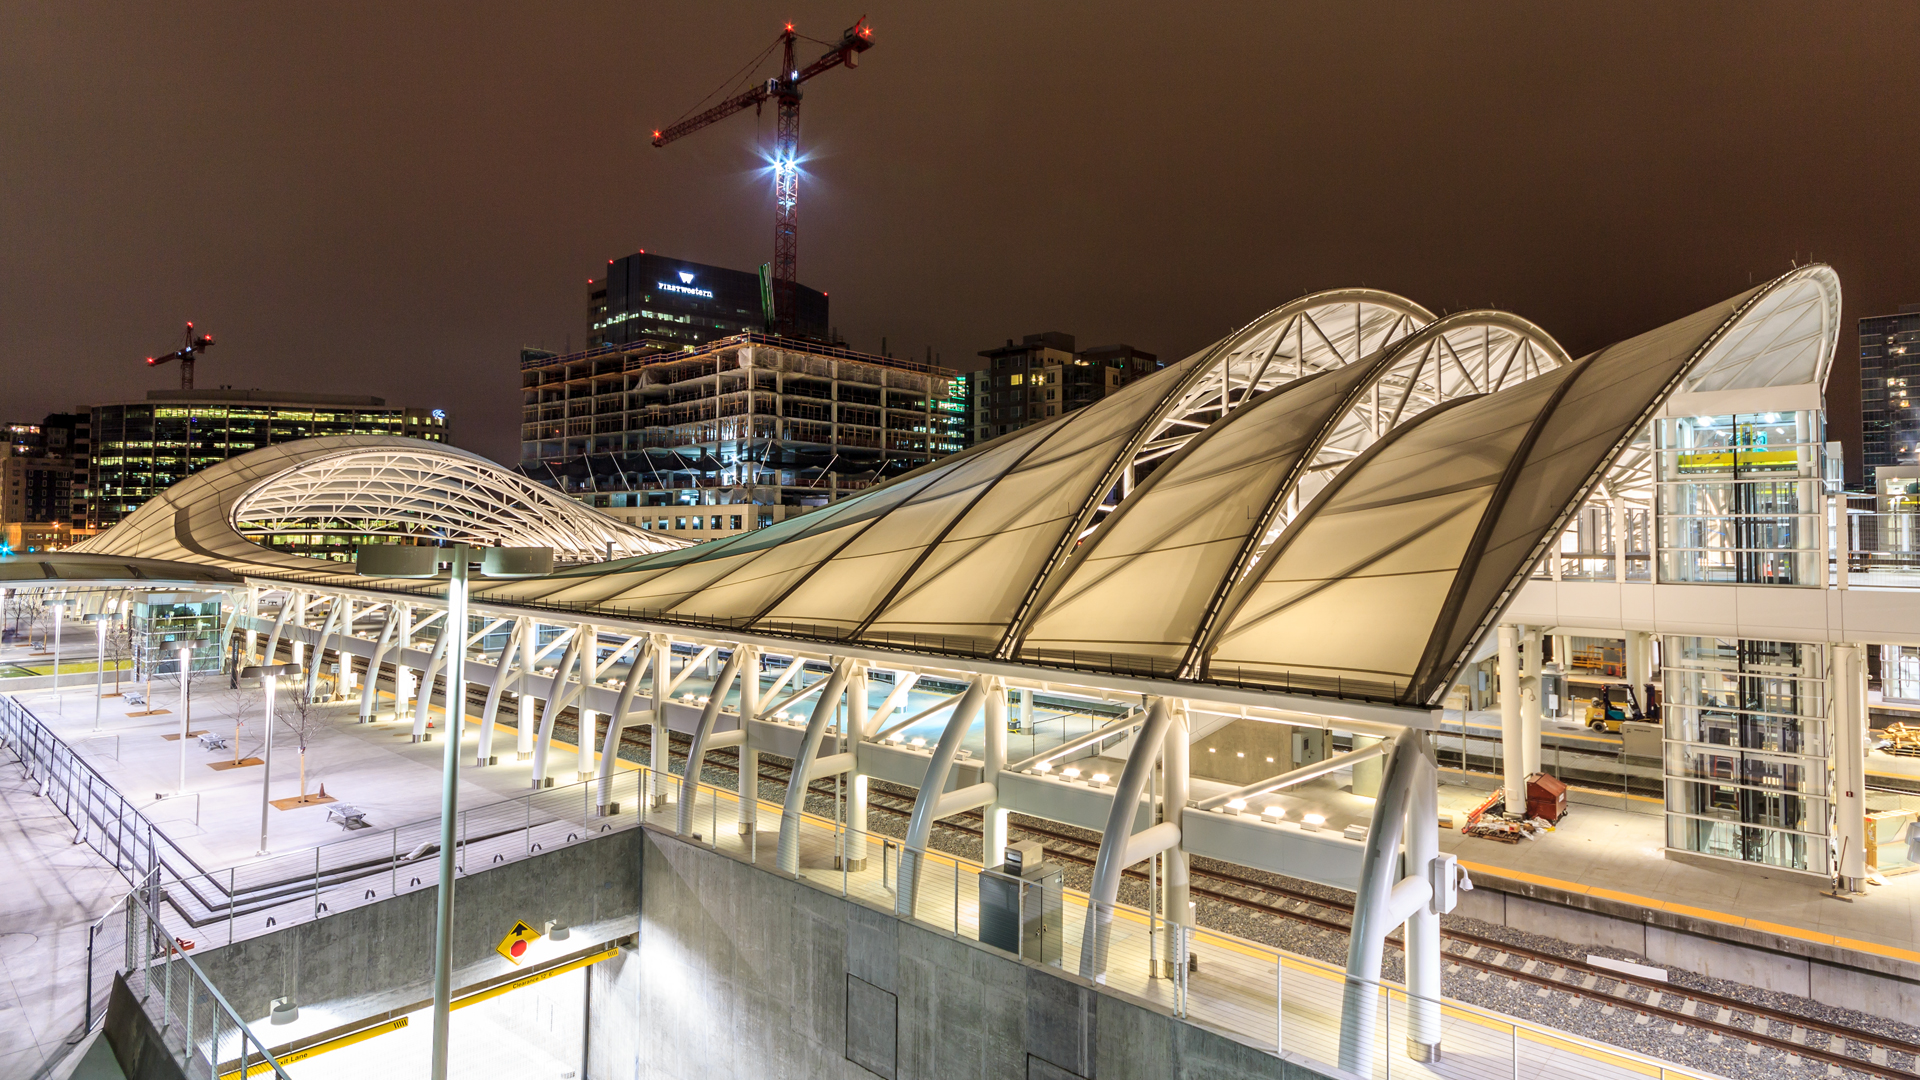 <p>With its signature open-air Train Hall, the $500 million Denver Union Station Transit Center redevelopment not only elevates its immediate surroundings, but also an entire city and region.</p>